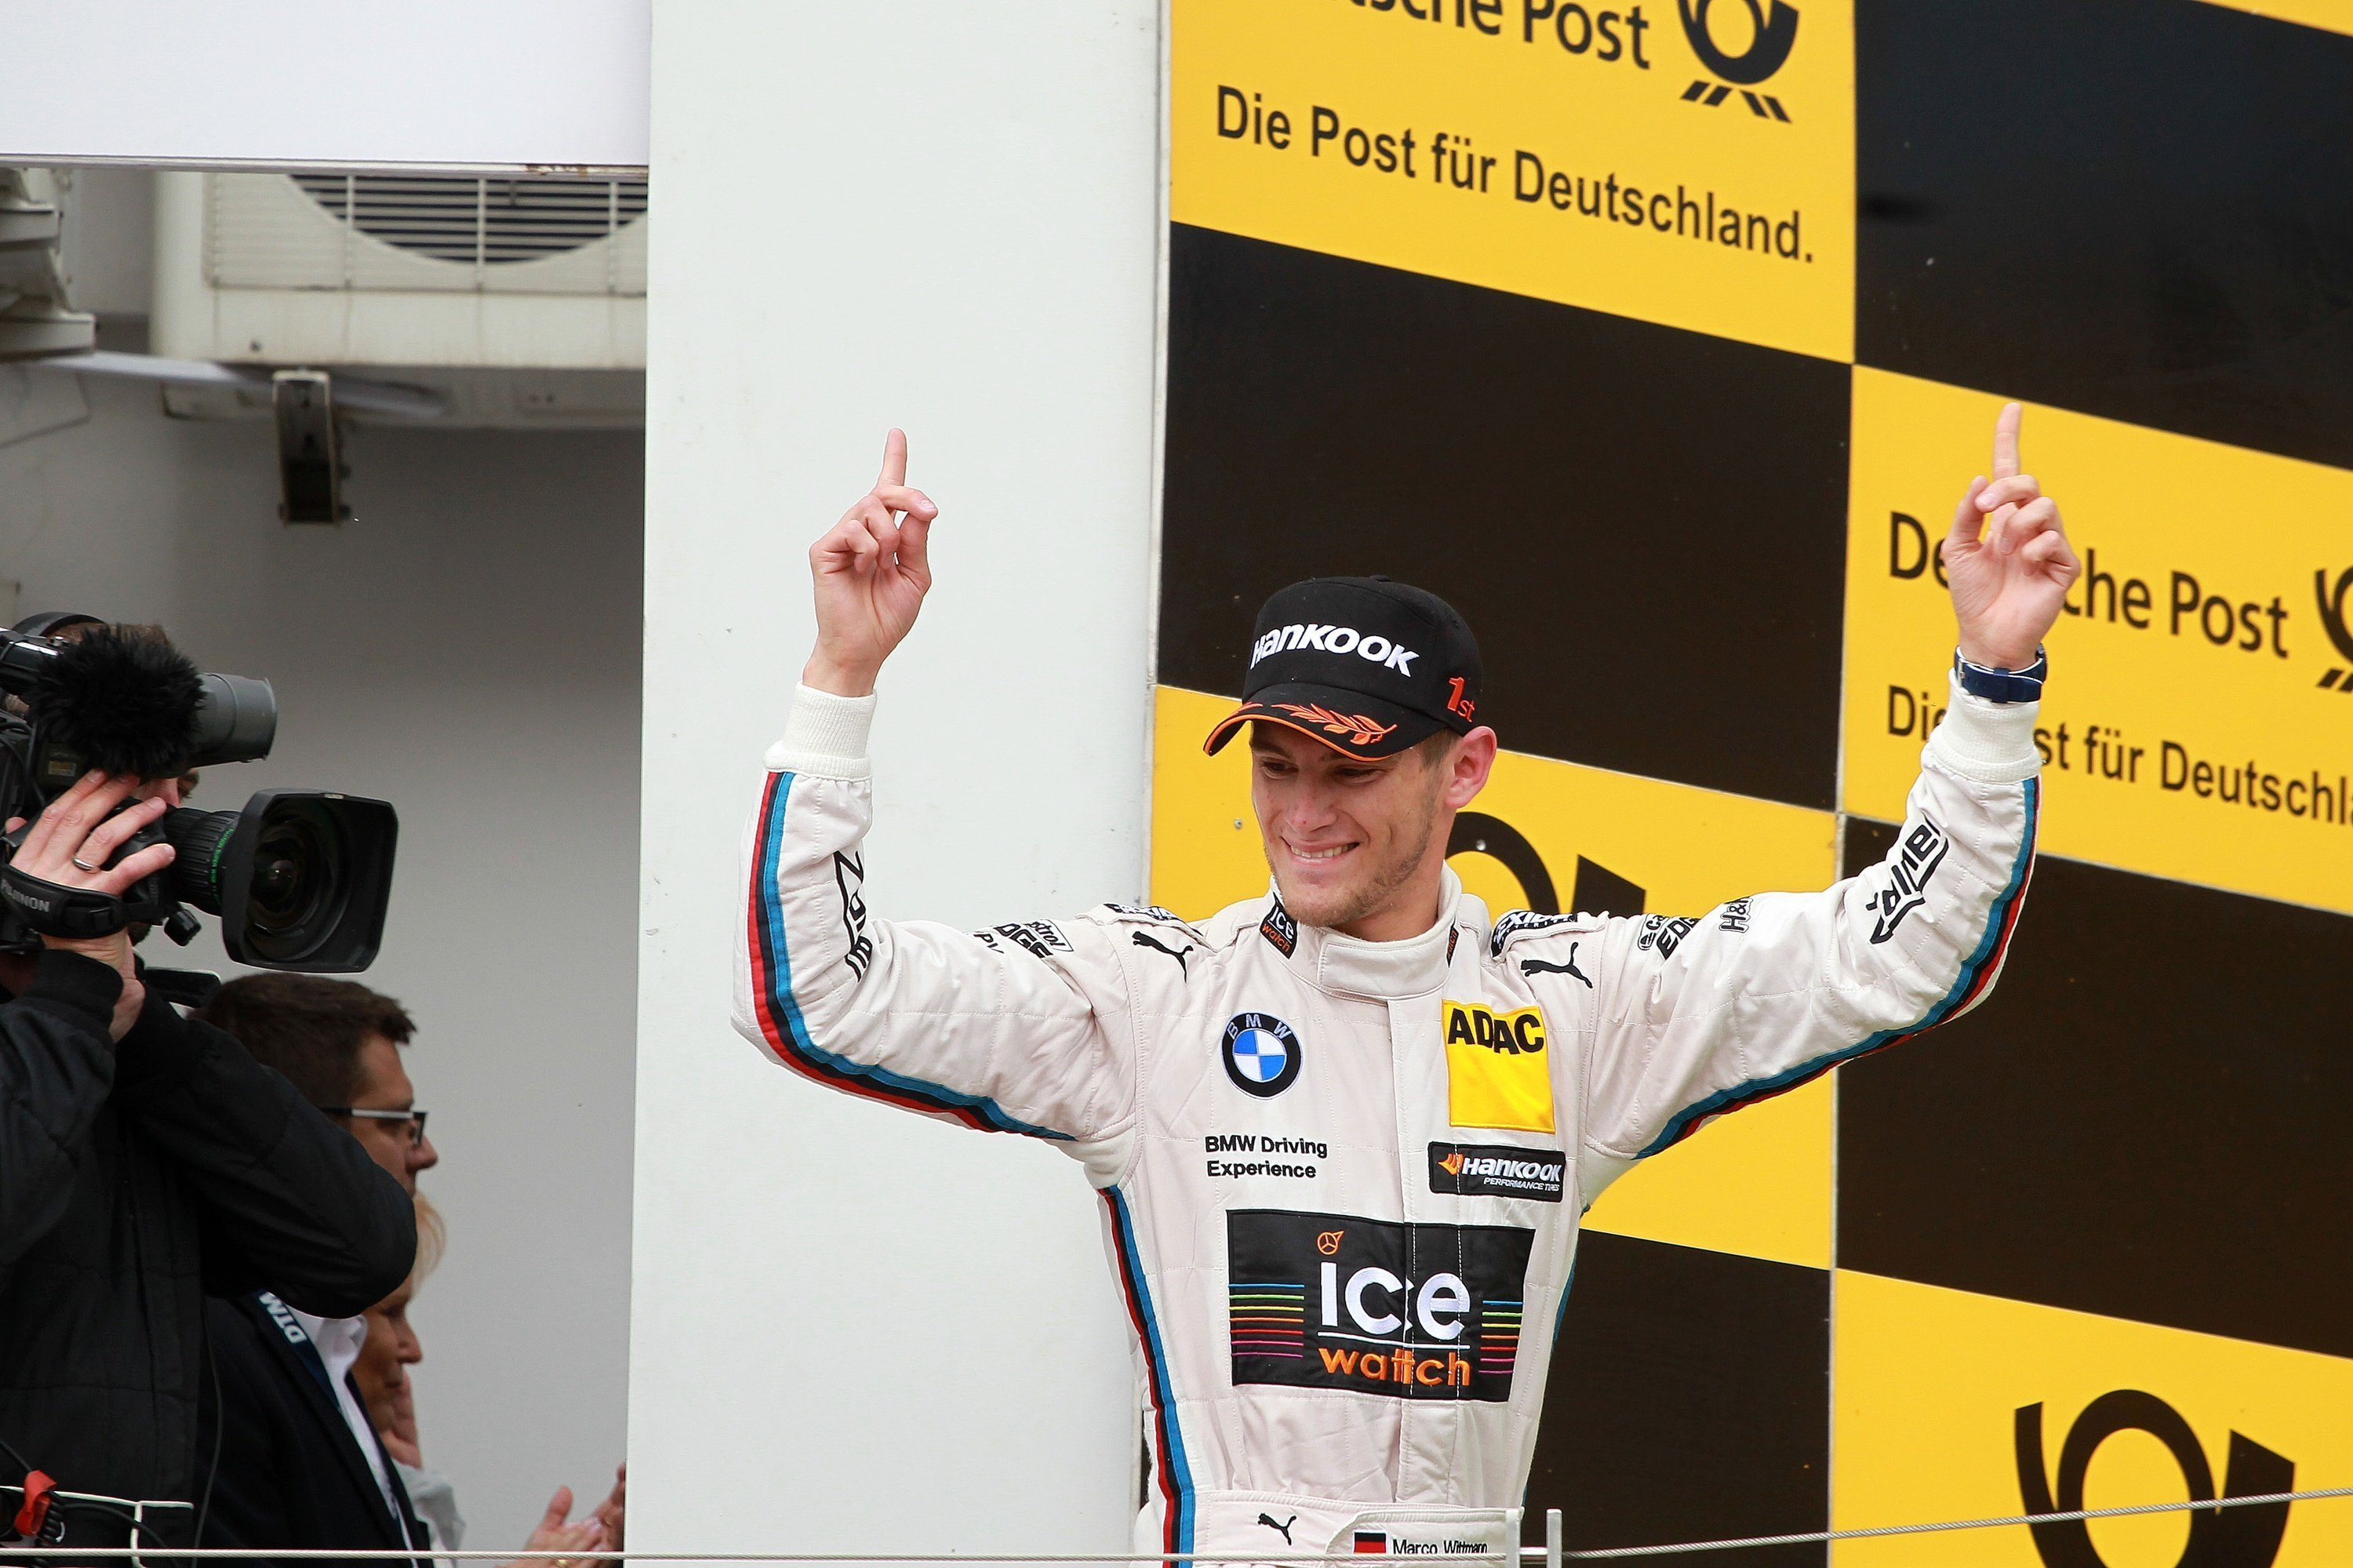 Budapest (HU) 01th June 2014. BMW Motorsport, Winner Marco Wittmann (DE) BMW Works Driver. This image is copyright free for editorial use © BMW AG (06/2014).